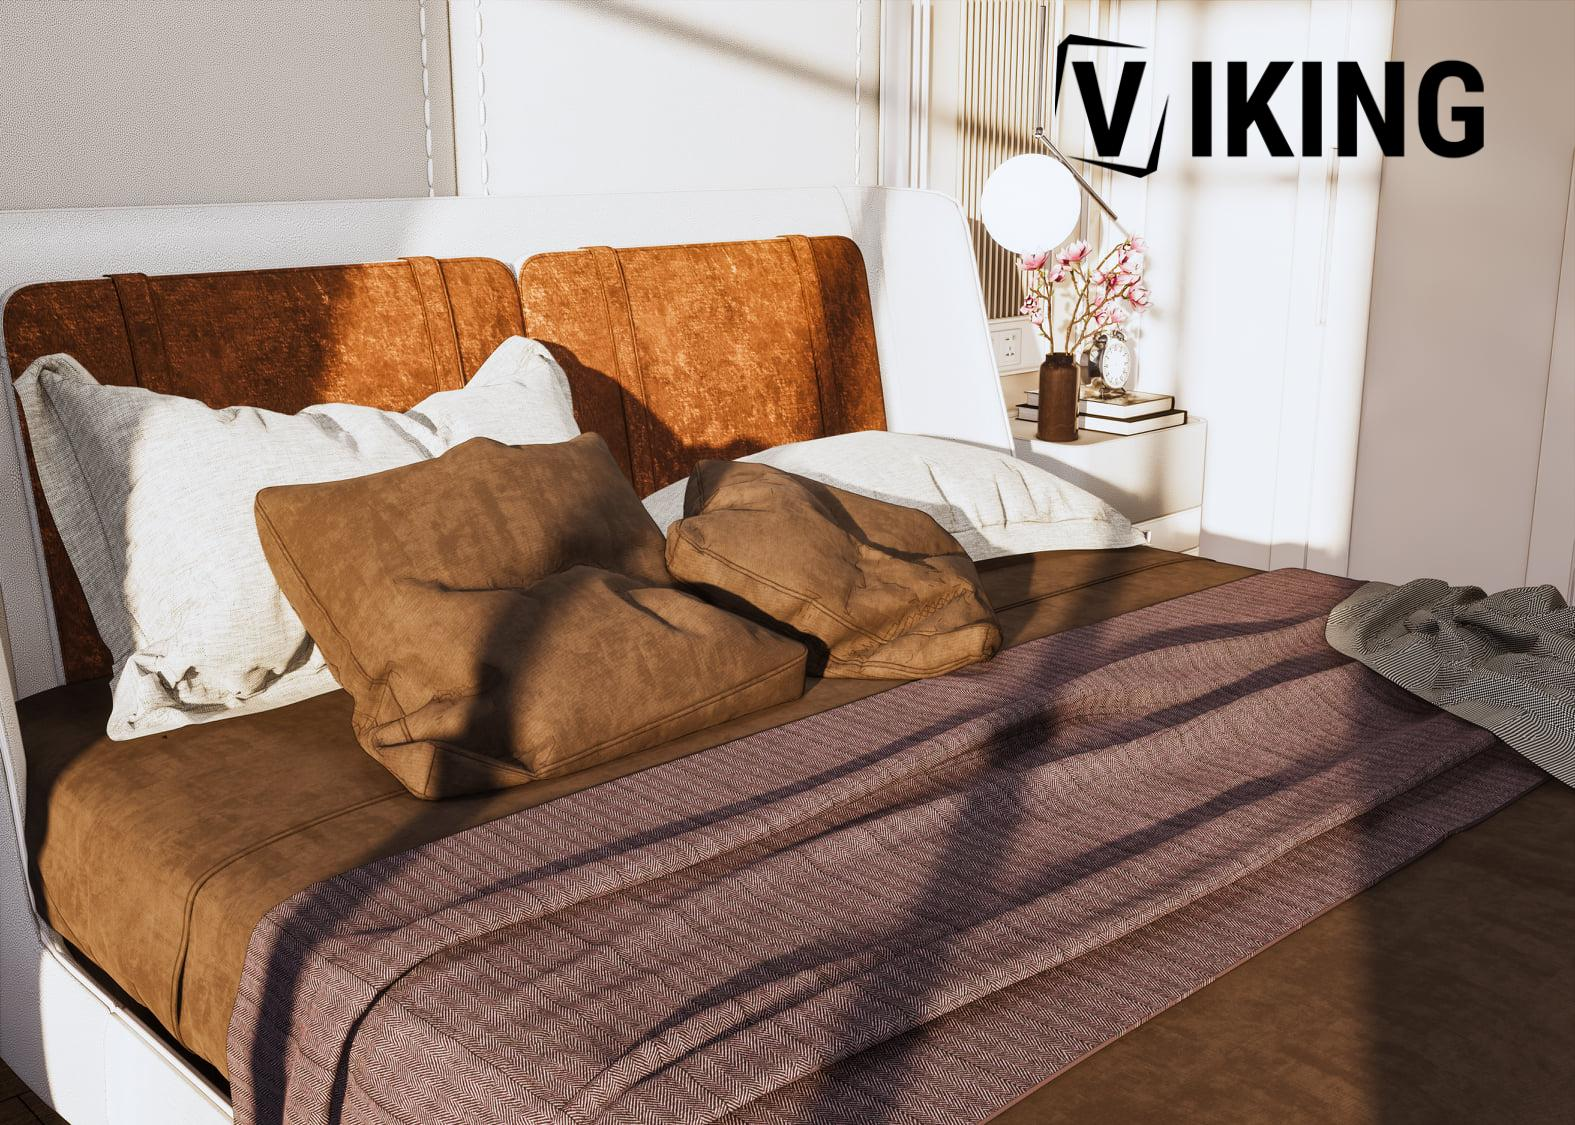 4444.Bedroom Scene Sketchup File free download by Duy Dao 2